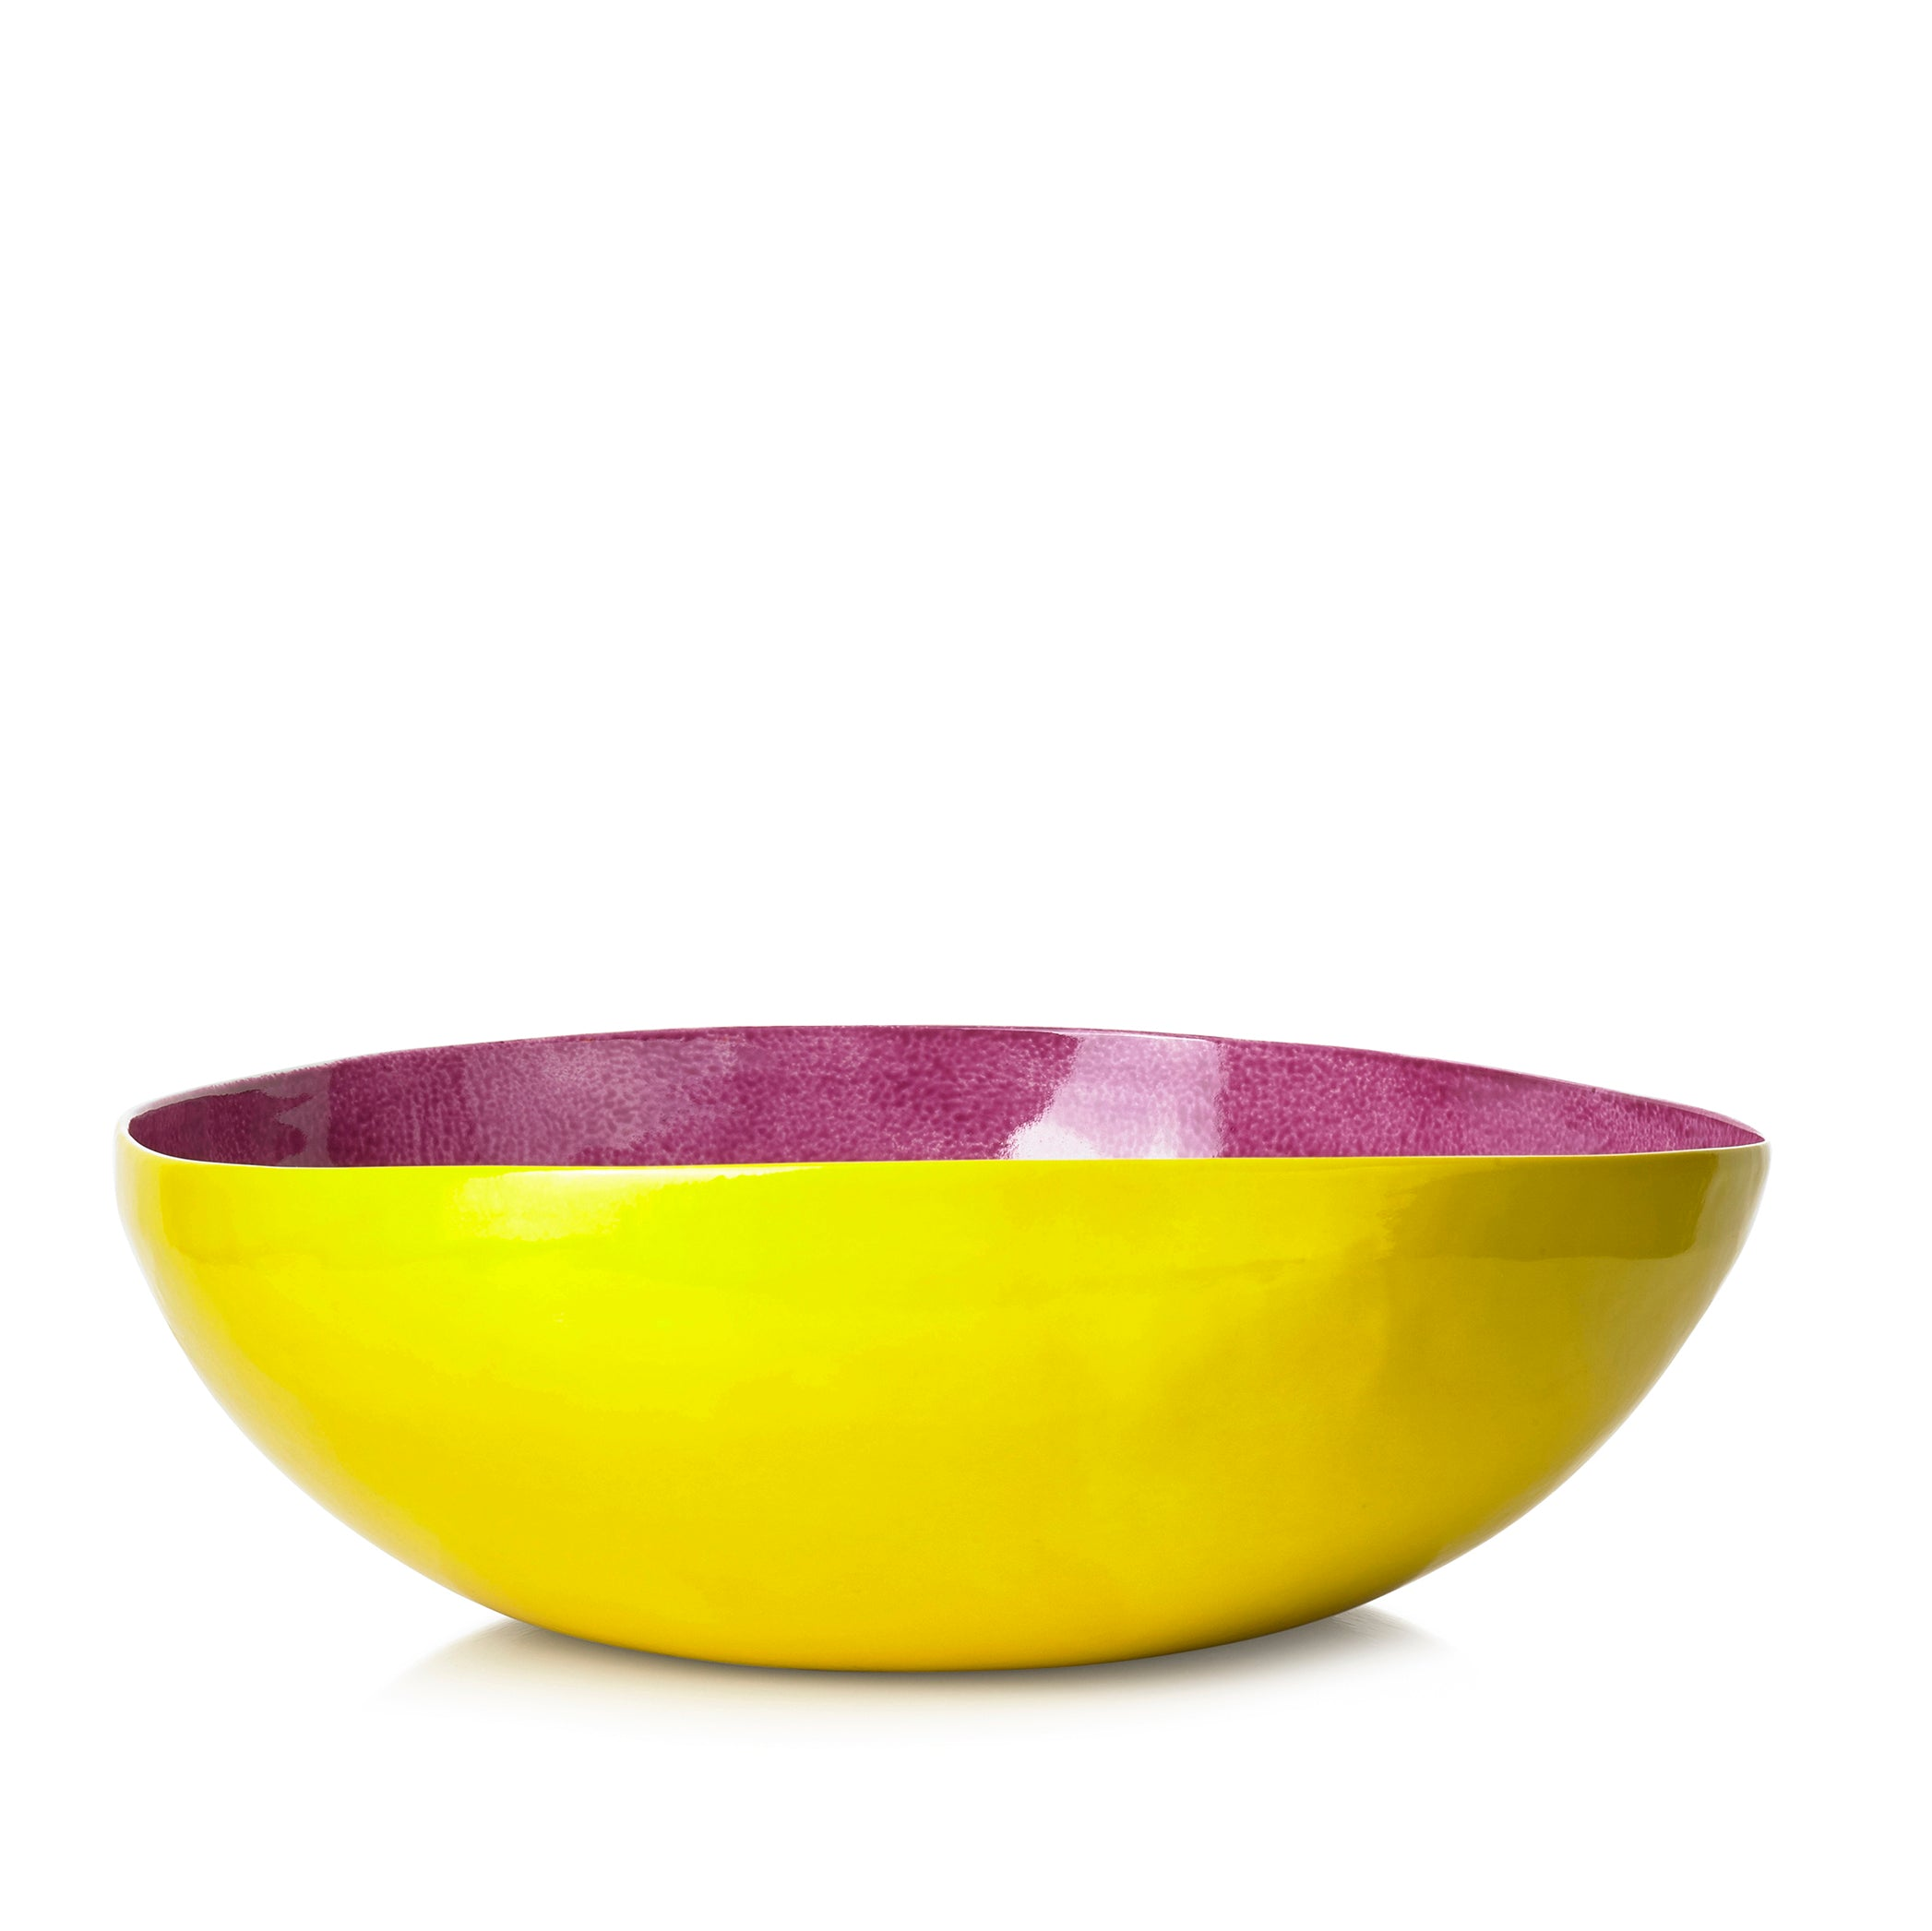 S&B Handmade 30cm Porcelain Medium Salad Bowl in Two Tone Pink and Yellow